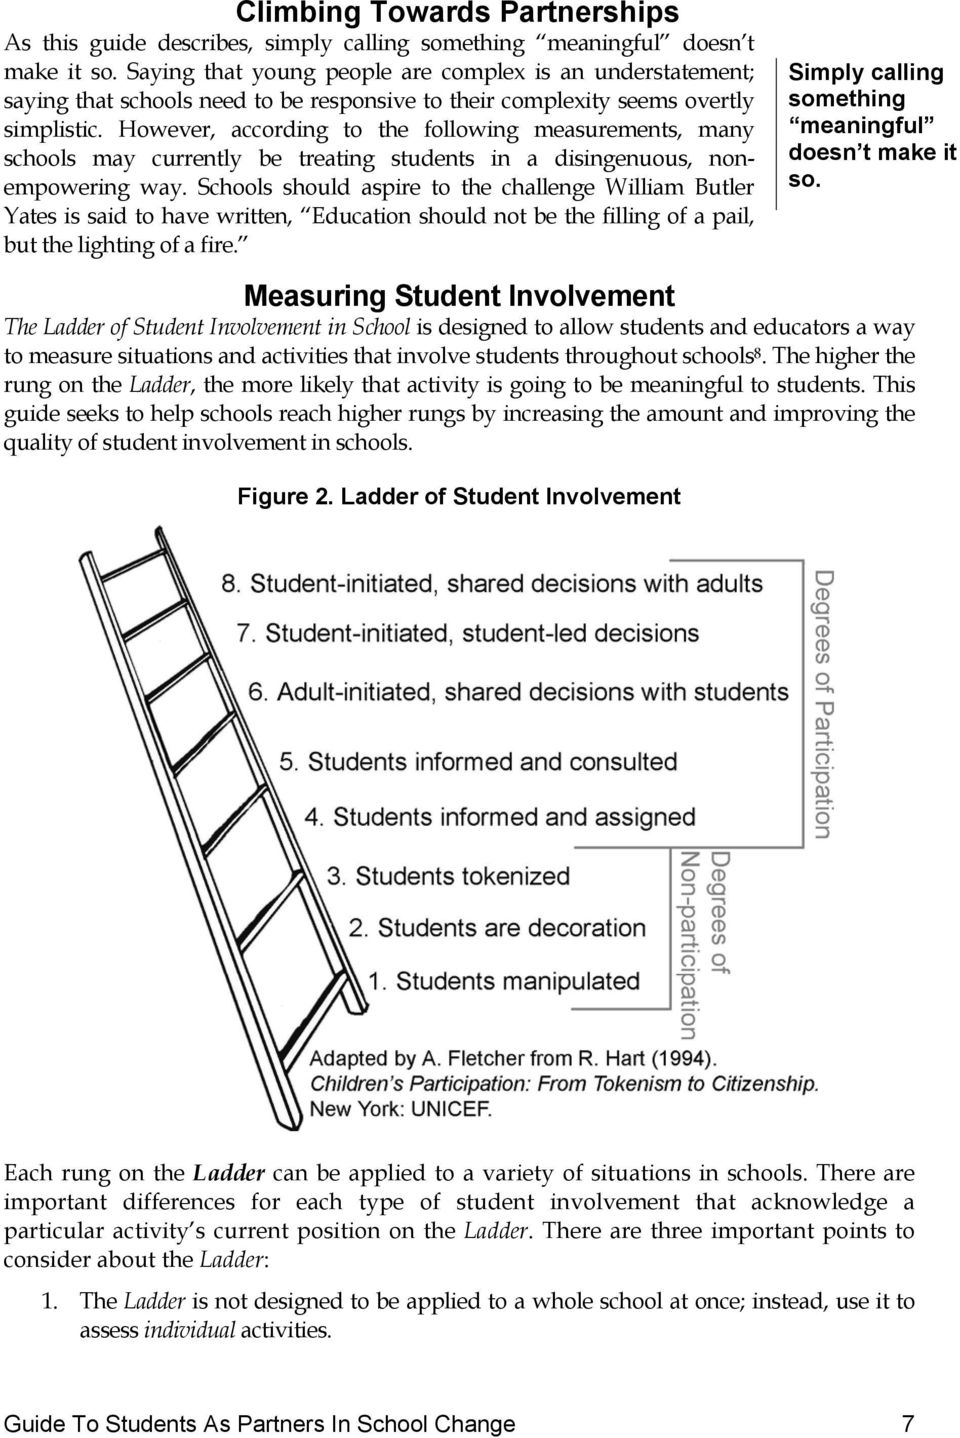 However, according to the following measurements, many schools may currently be treating students in a disingenuous, nonempowering way.